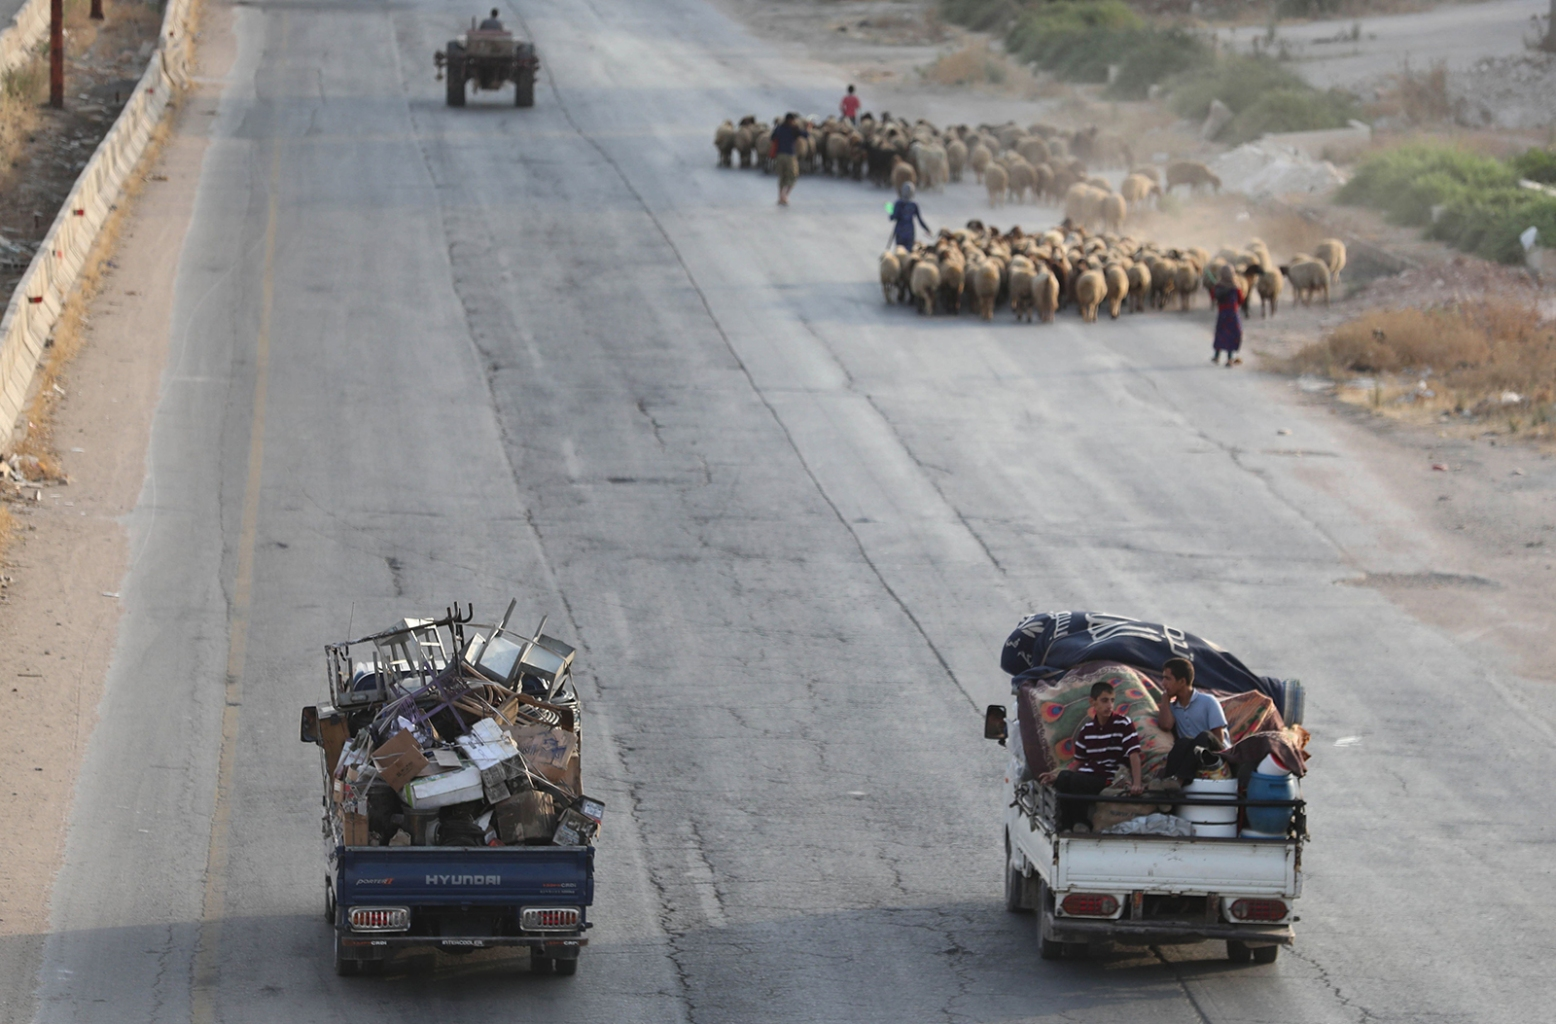 Syrian families from the southeastern Idlib province and the northern countryside of Hama flee battles in trucks loaded with their belongings past a flock of sheep on the highway near Maaret al-Numan on Aug. 14. OMAR HAJ KADOUR/AFP/Getty Images